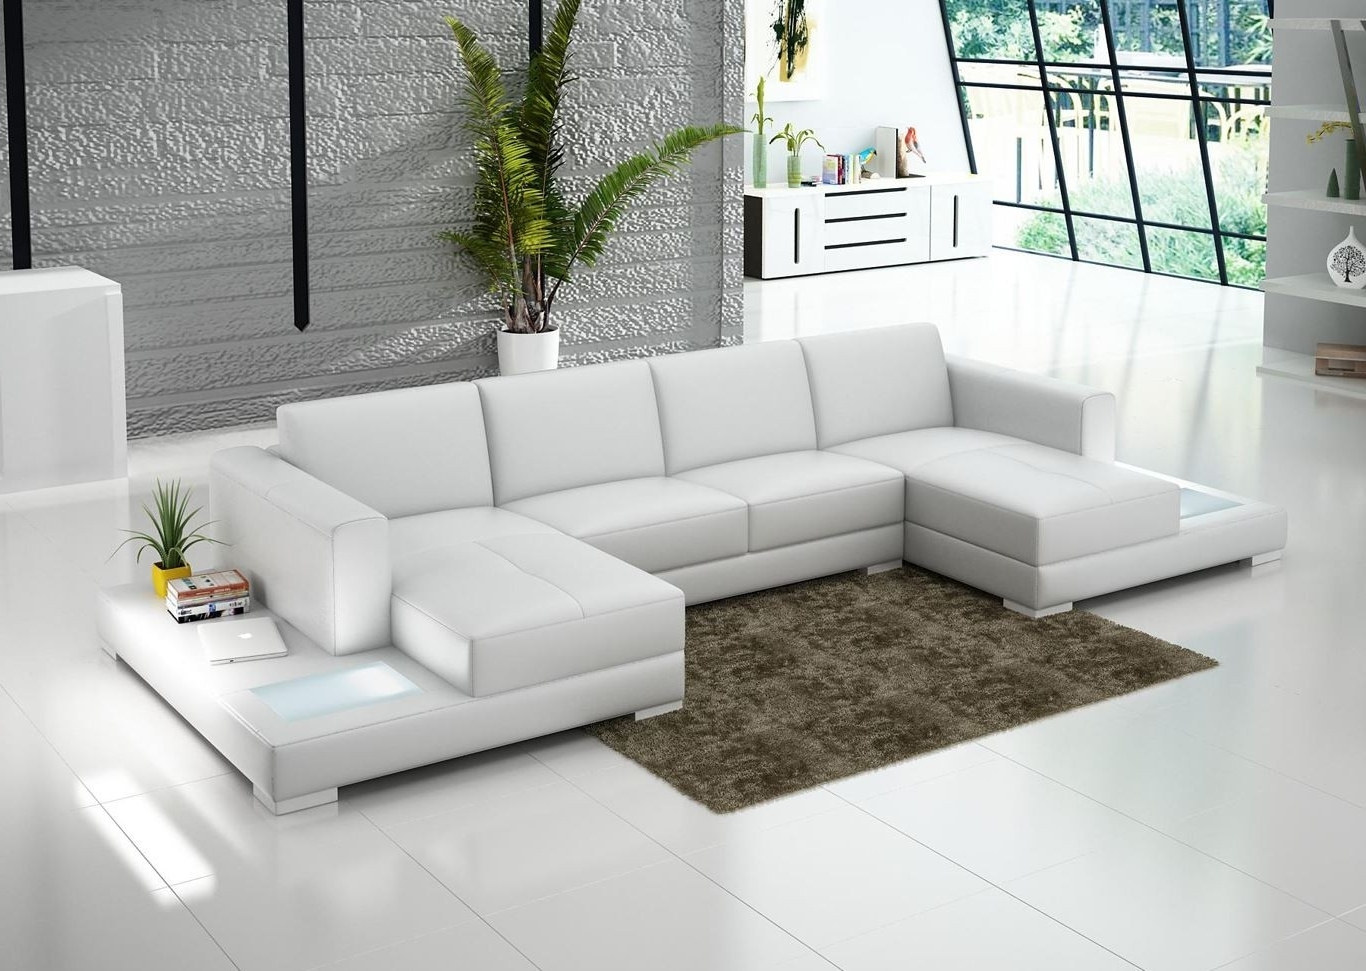 most chairse sectional ideas chaise cu upholstered of released regarding sofas furniture recently double